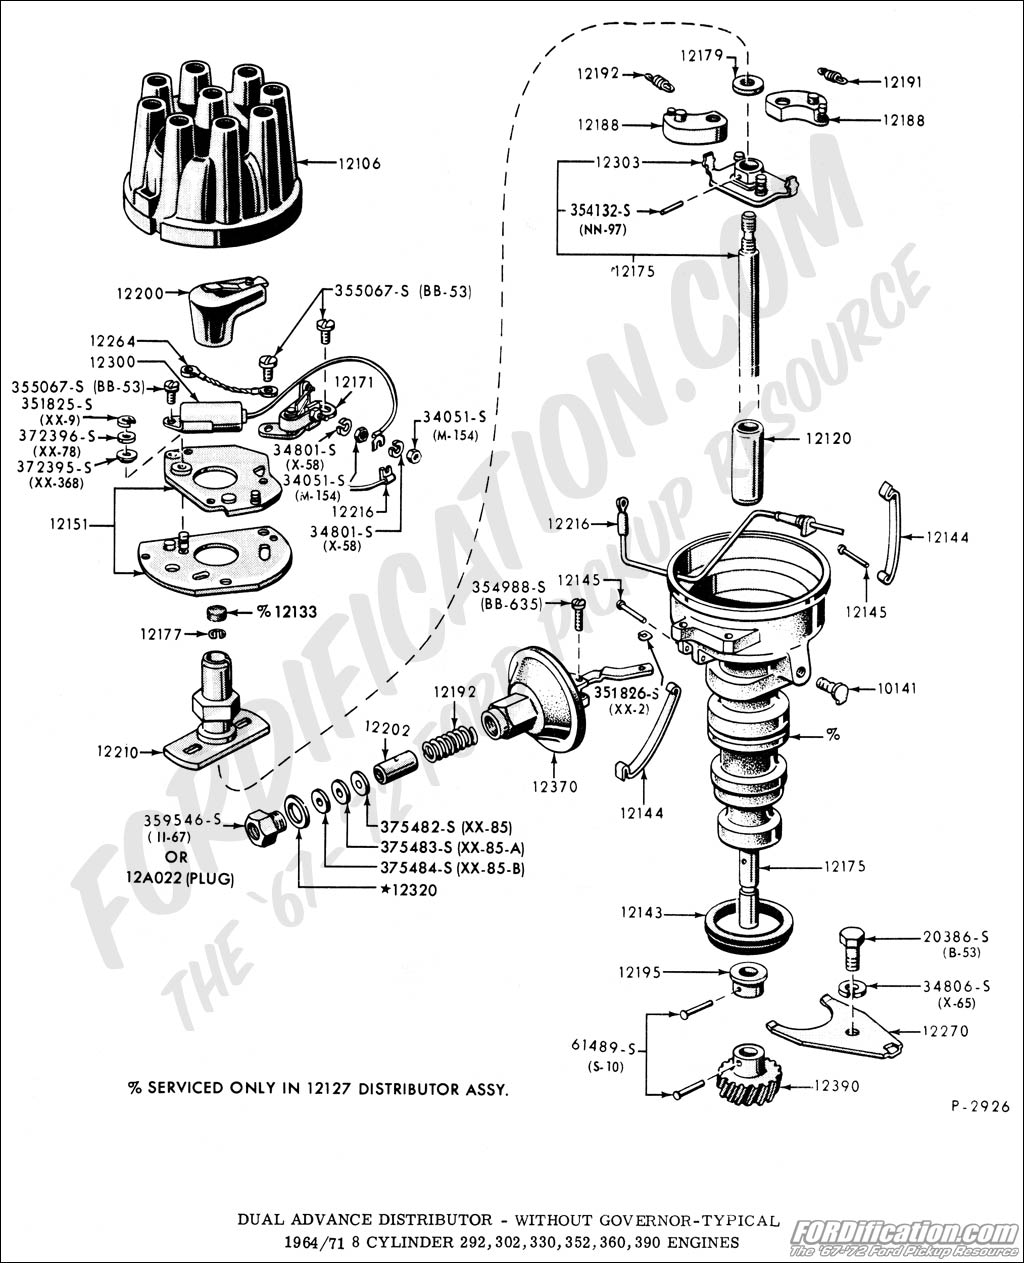 87 Ford F 150 Wiring Diagram Audio Jack Wiring Guitar Pedal For Wiring Diagram Schematics